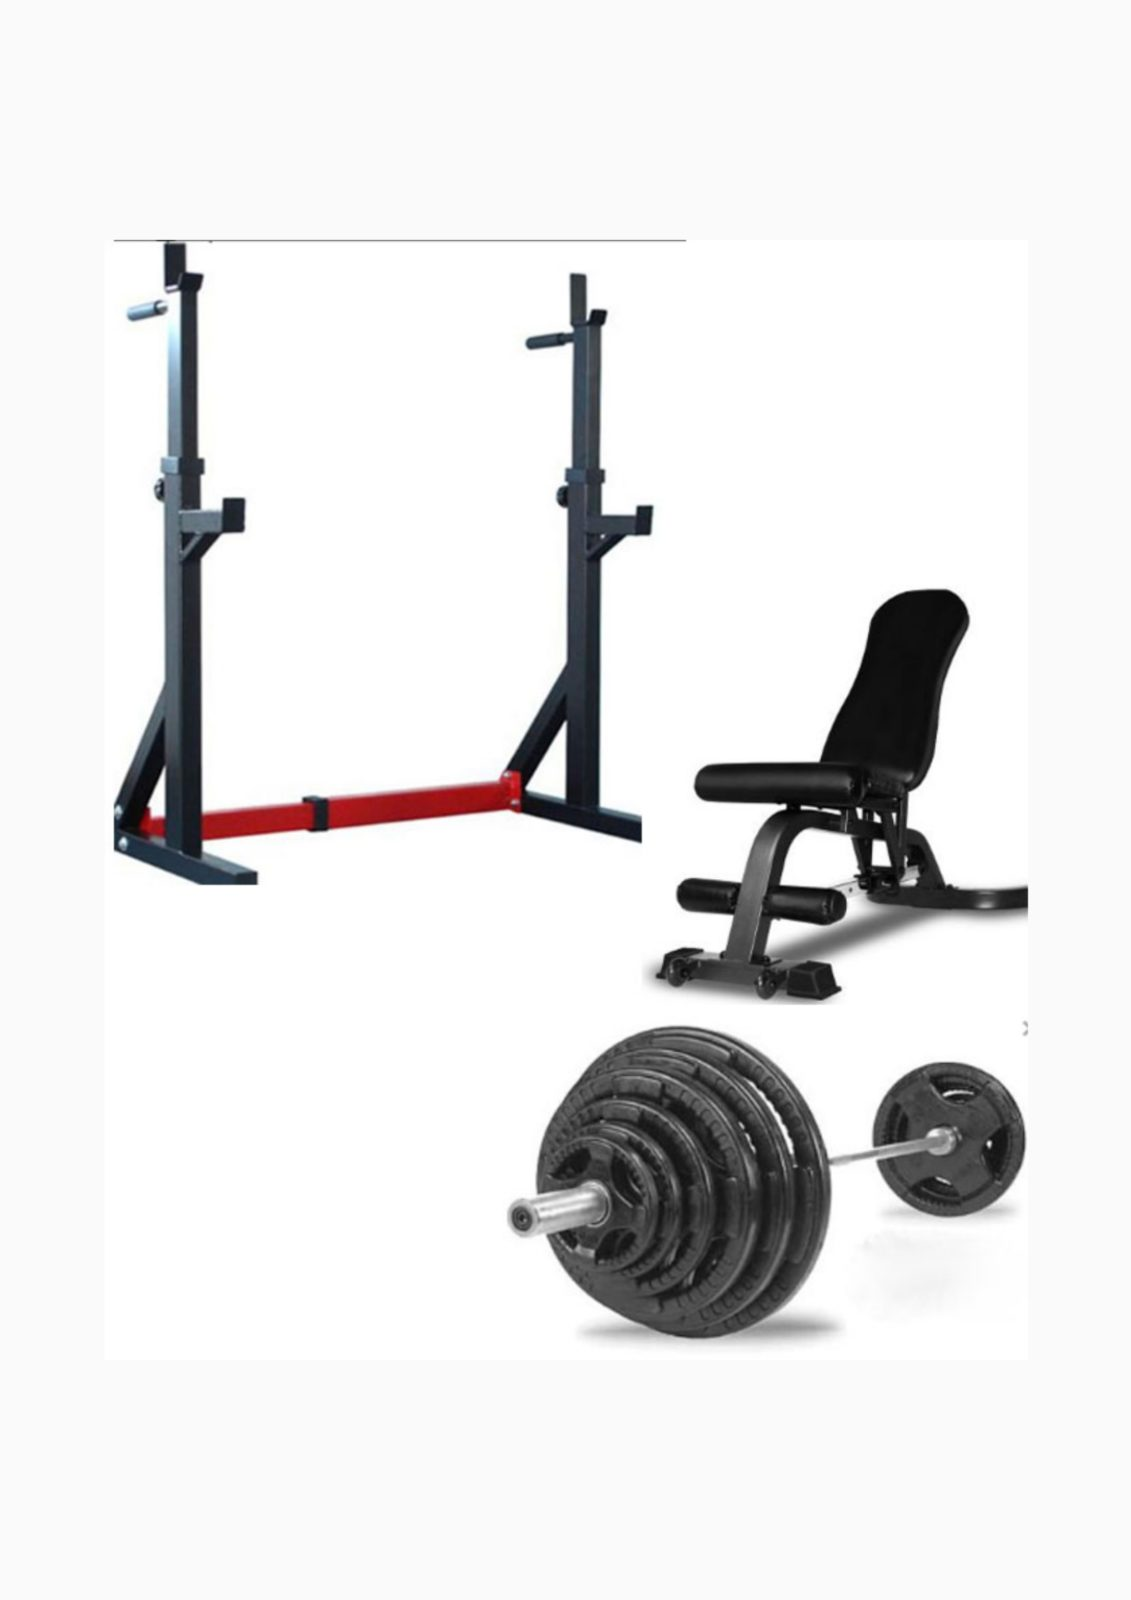 Home Gym Package Squat Stand Adjustable Bench Oly Bar Amp 100kg Weights Fitness Equipment